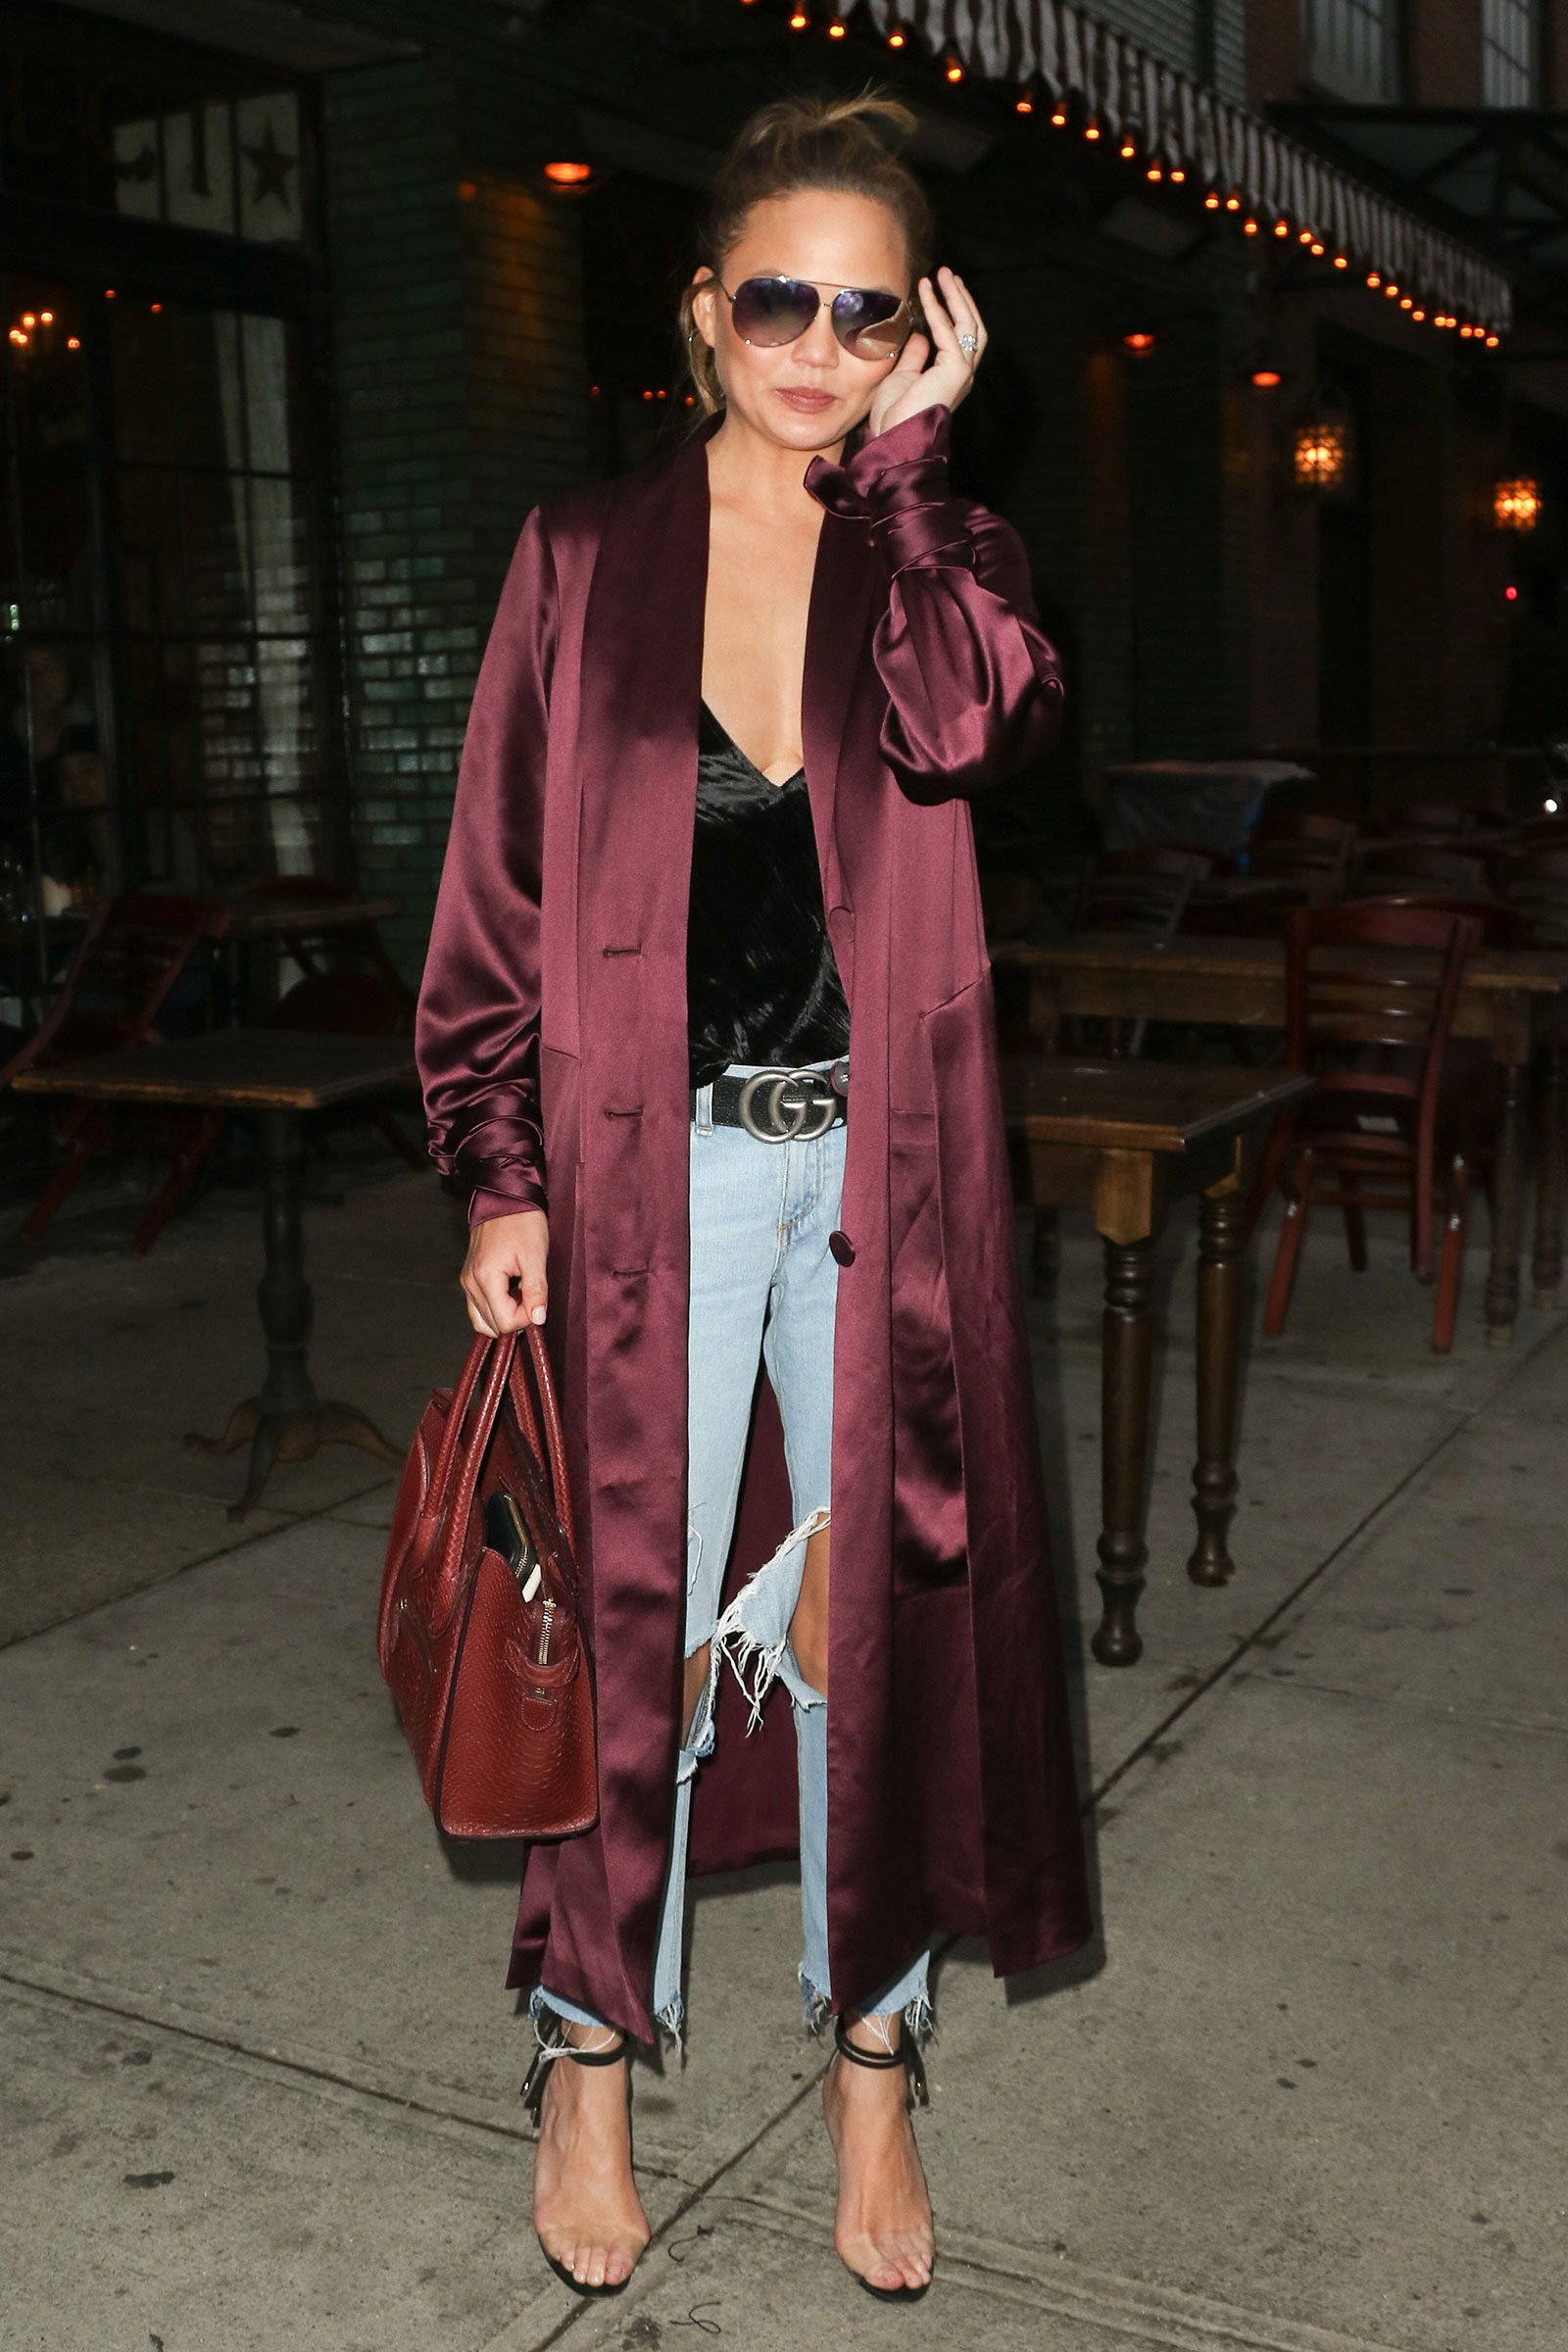 Chrissy Teigen steps out in a burgundy satin duster, ripped jeans and clear strap heels.